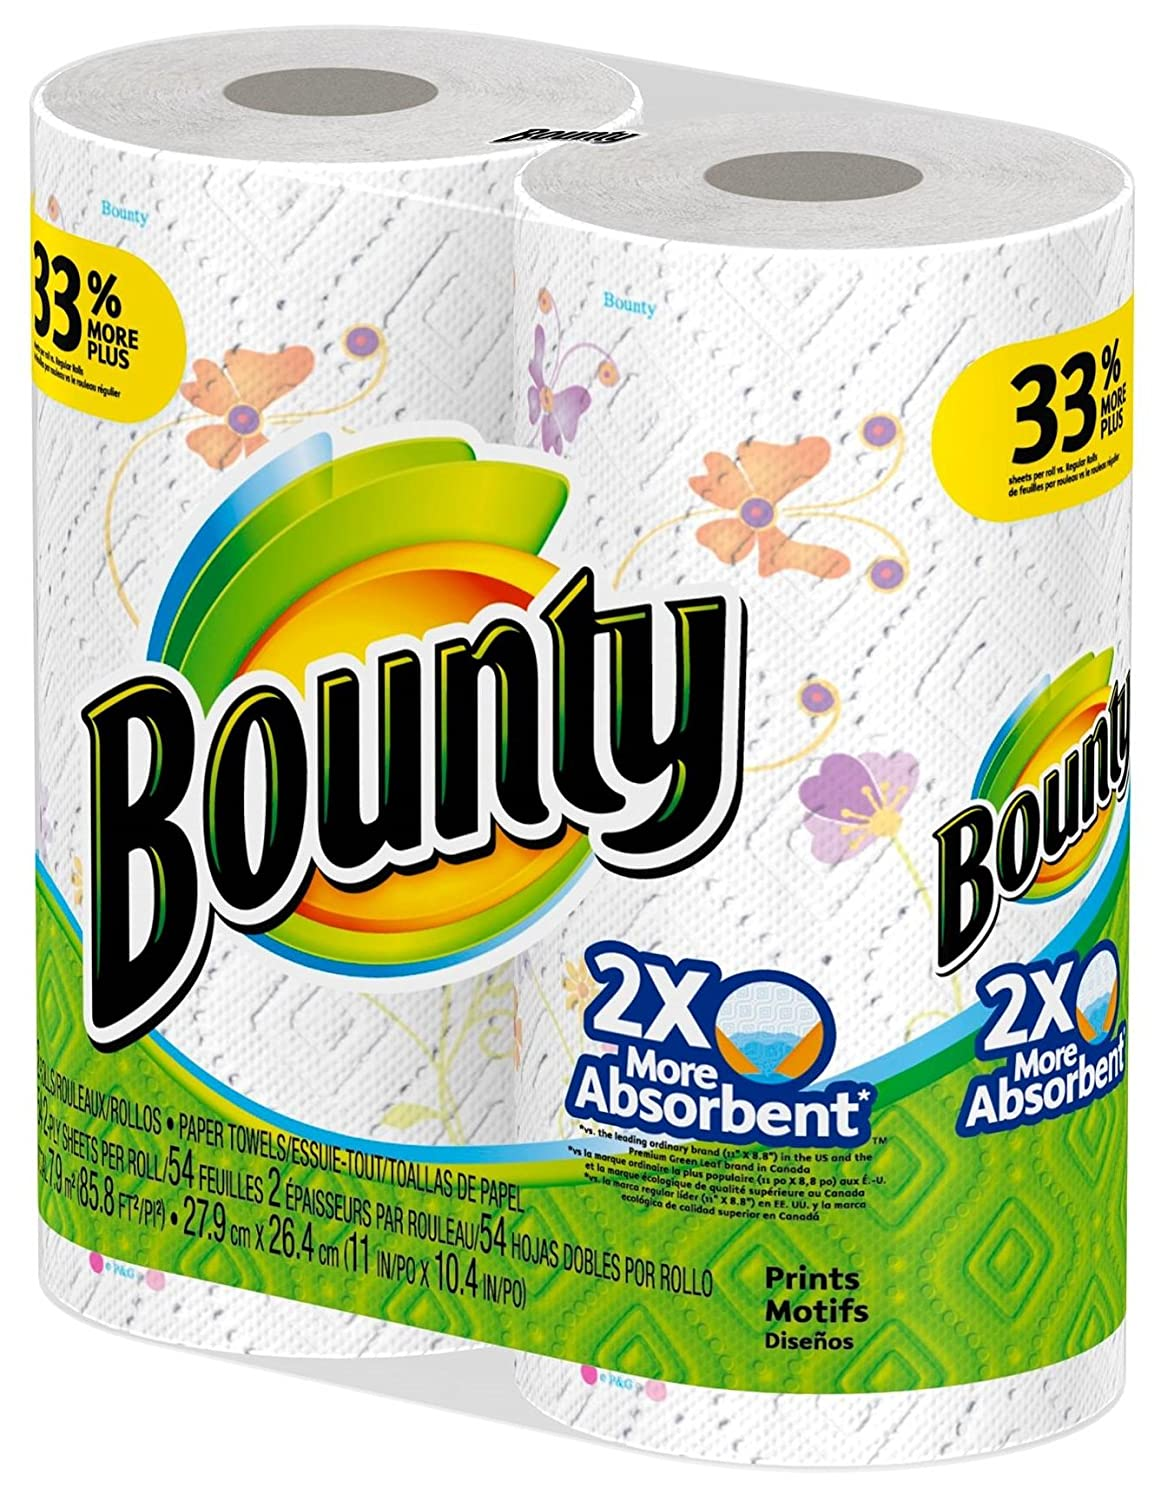 Amazon.com: Bounty Printed Paper Towels 2 Big Rolls: Health & Personal Care